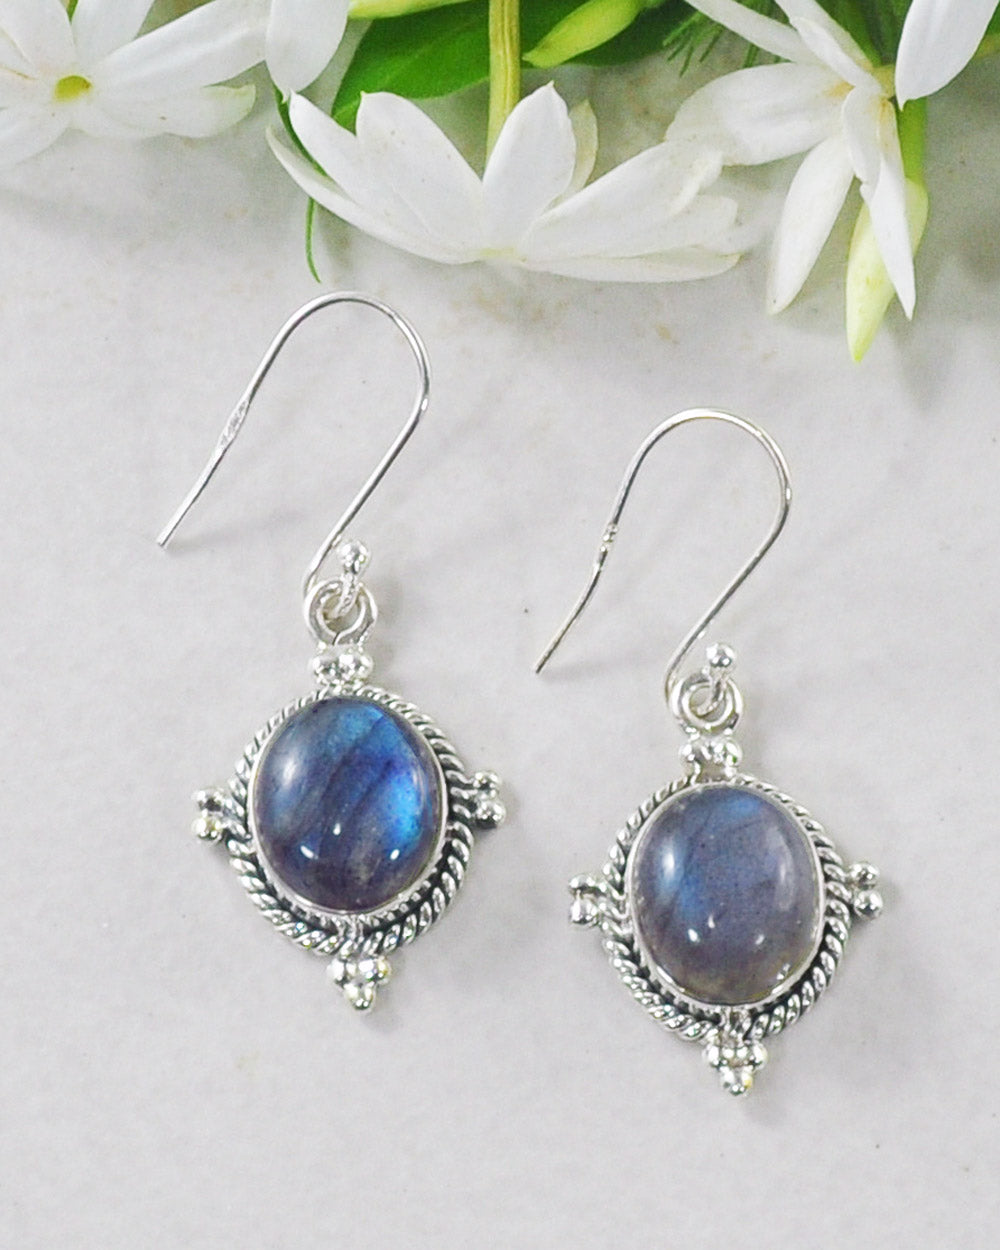 Bhakti Labradorite Earrings in Sterling Silver